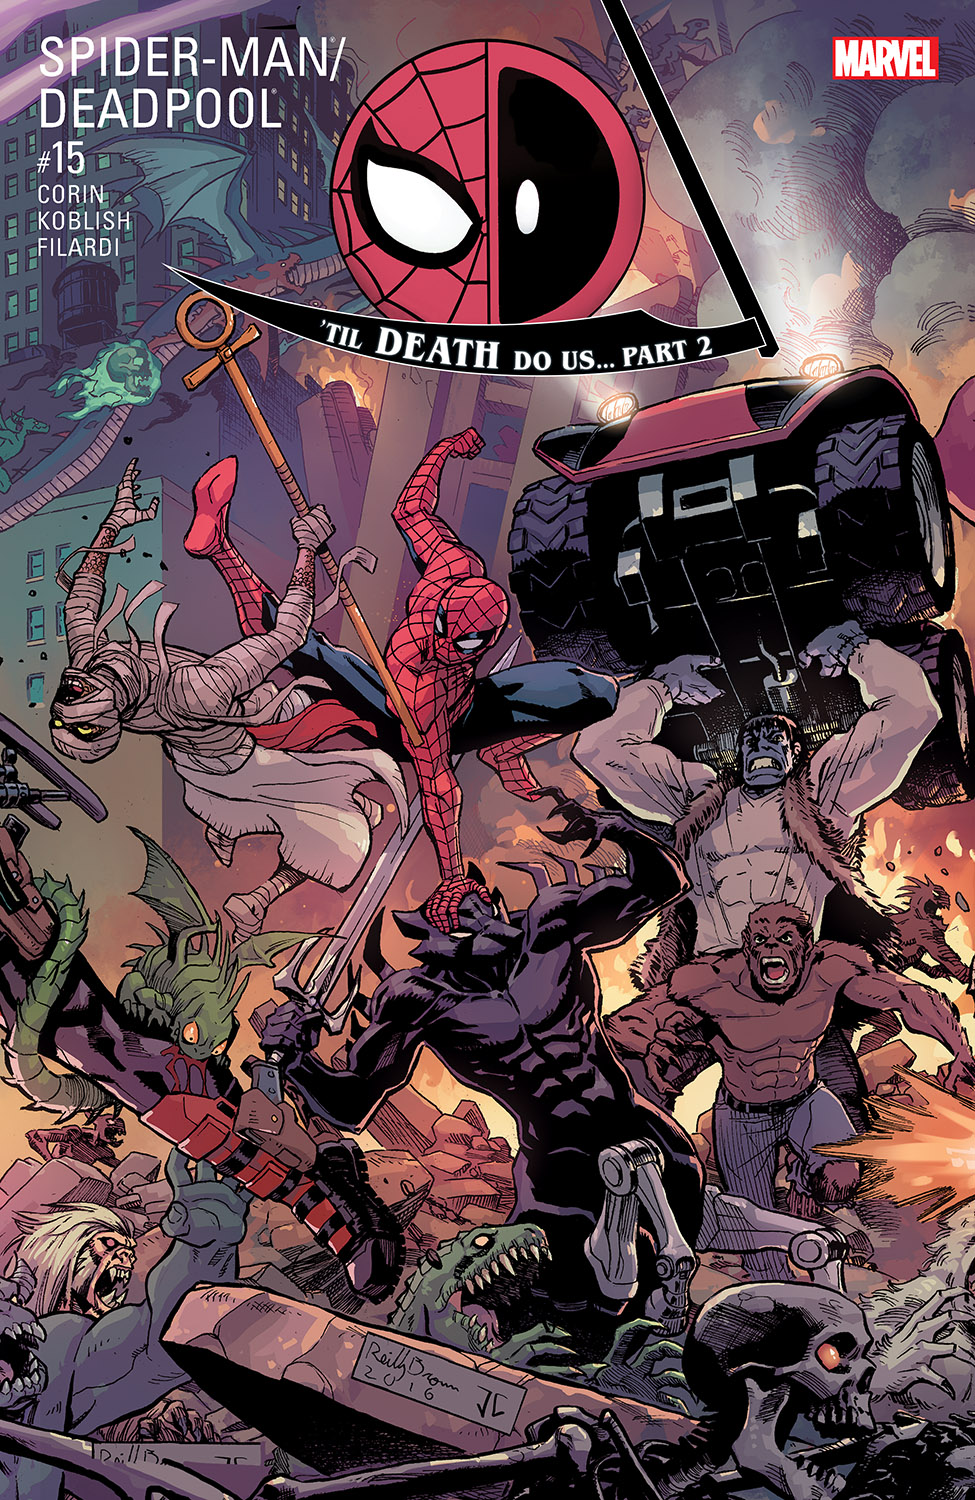 Spider-Man/Deadpool (2016) #15